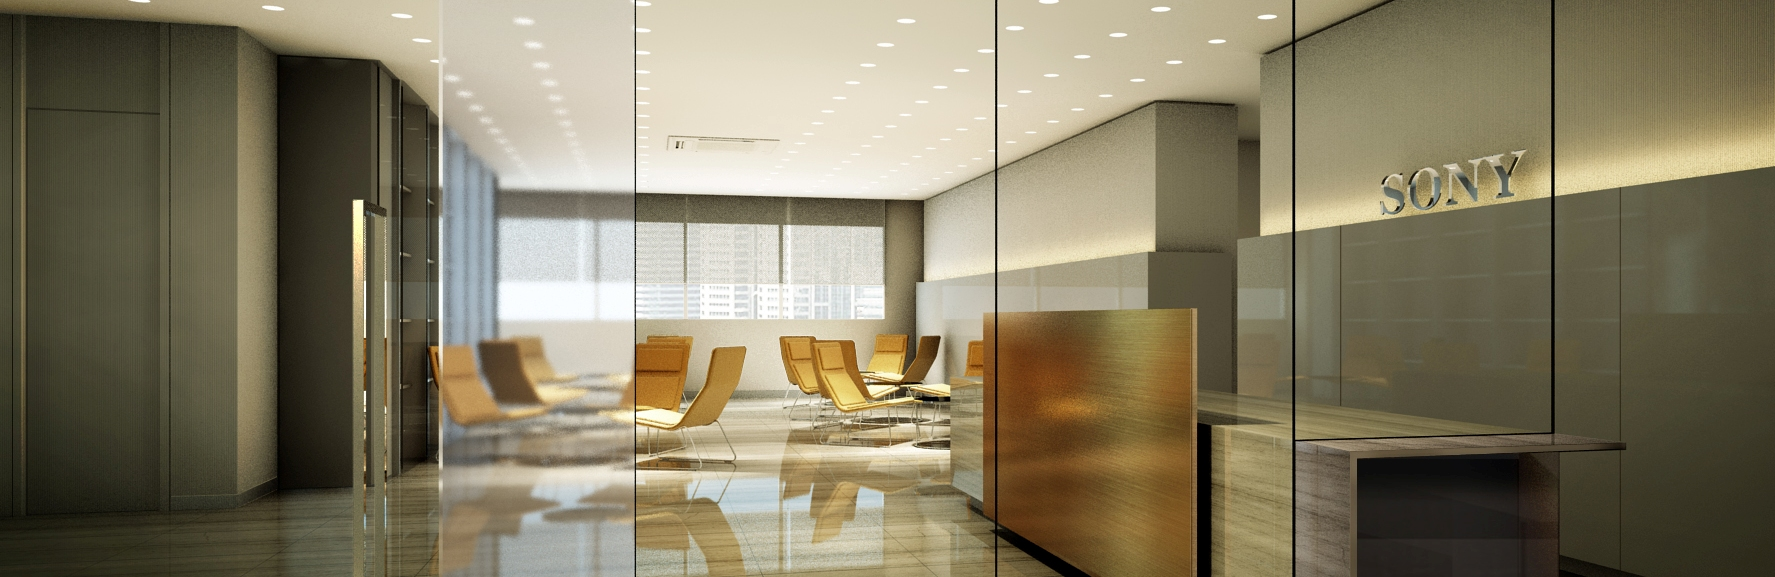 Corporate office background the image for Modern office reception backdrop design